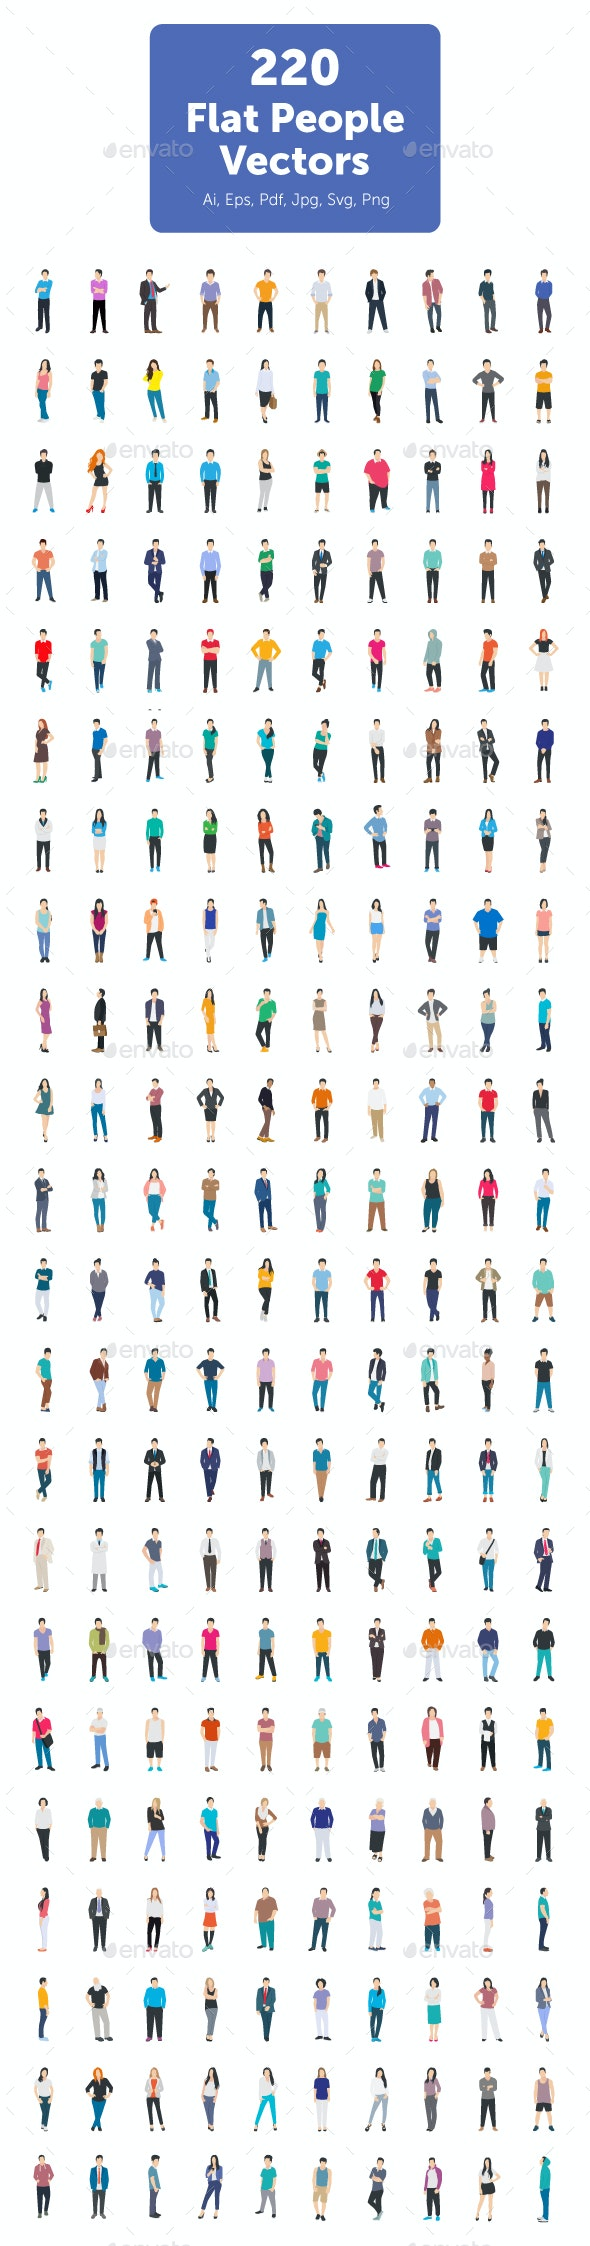 220 Flat People Vector Icons - Icons